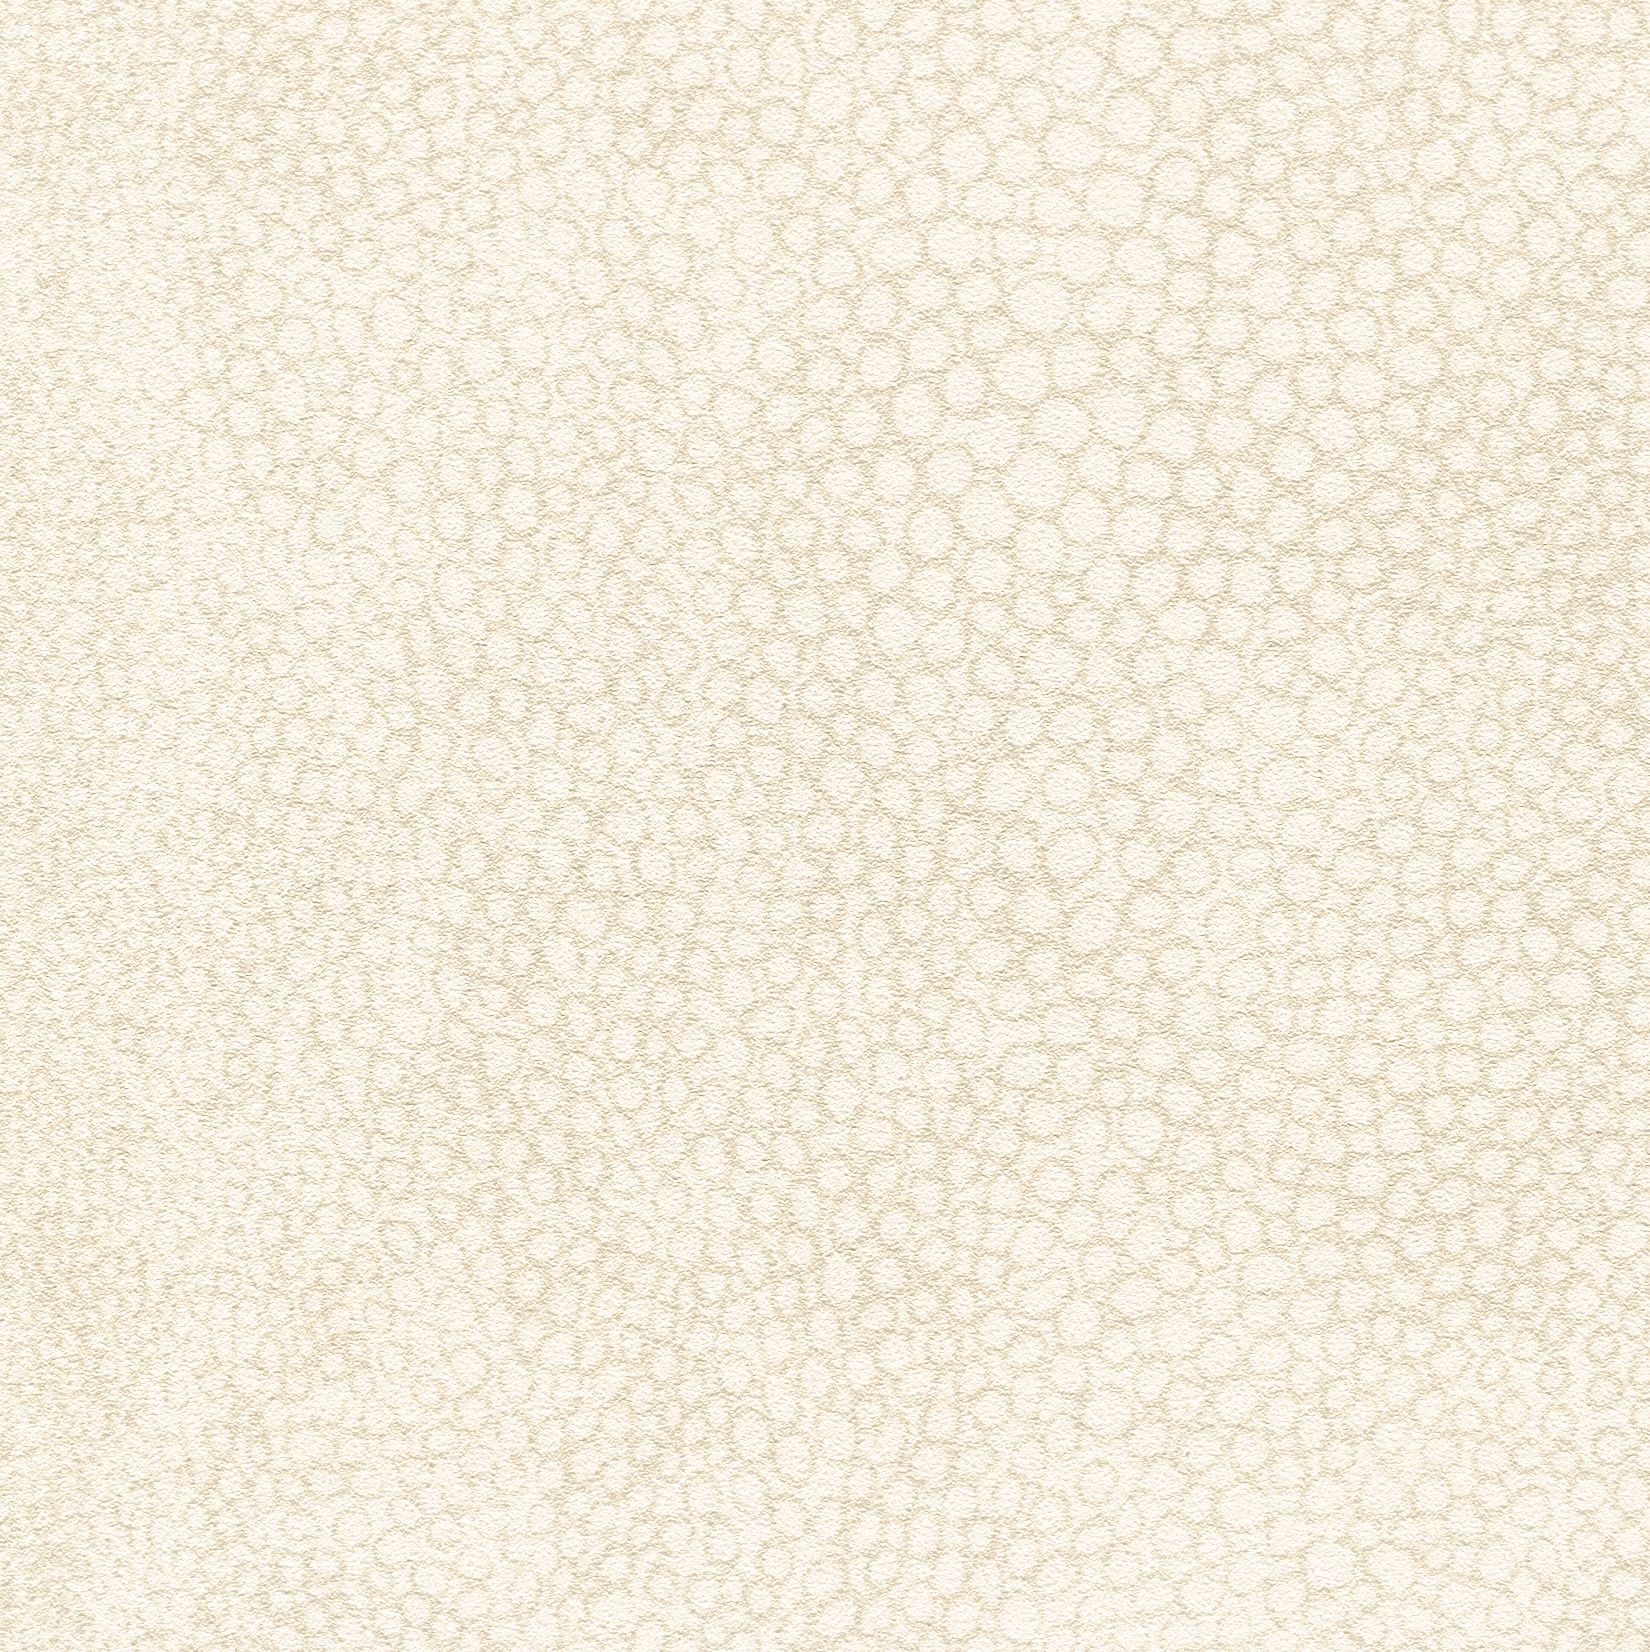 Pearl paint texture